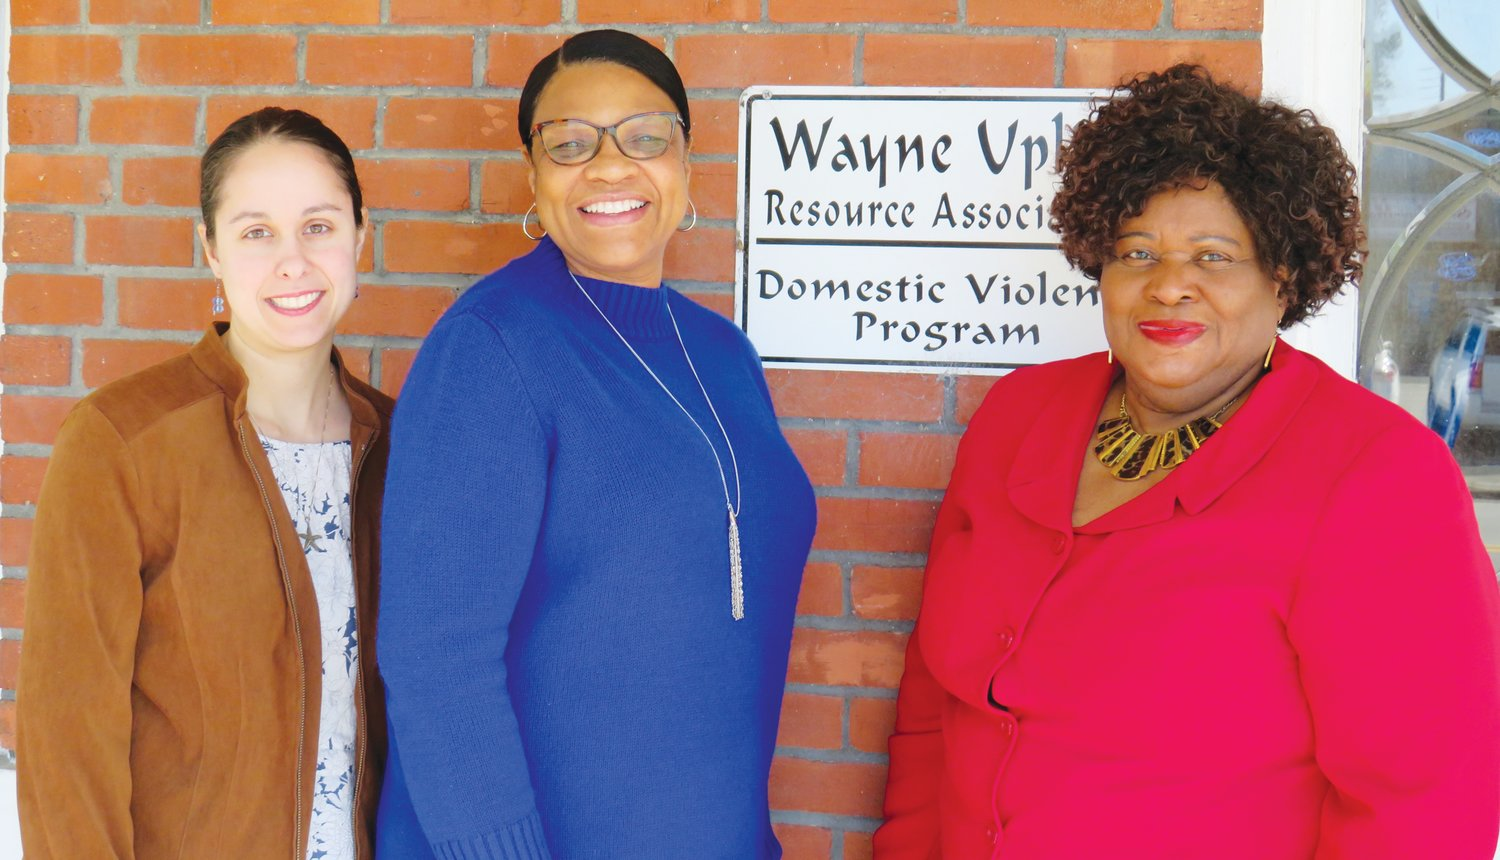 Pictured from left are Rachel Rhodes, Linda Holden-Cox and Glenda  White. Wayne Uplift received a grant to support its Domestic Violence Victim support program which includes a 24/7 crisis hotline, support groups and a DV Victim shelter.